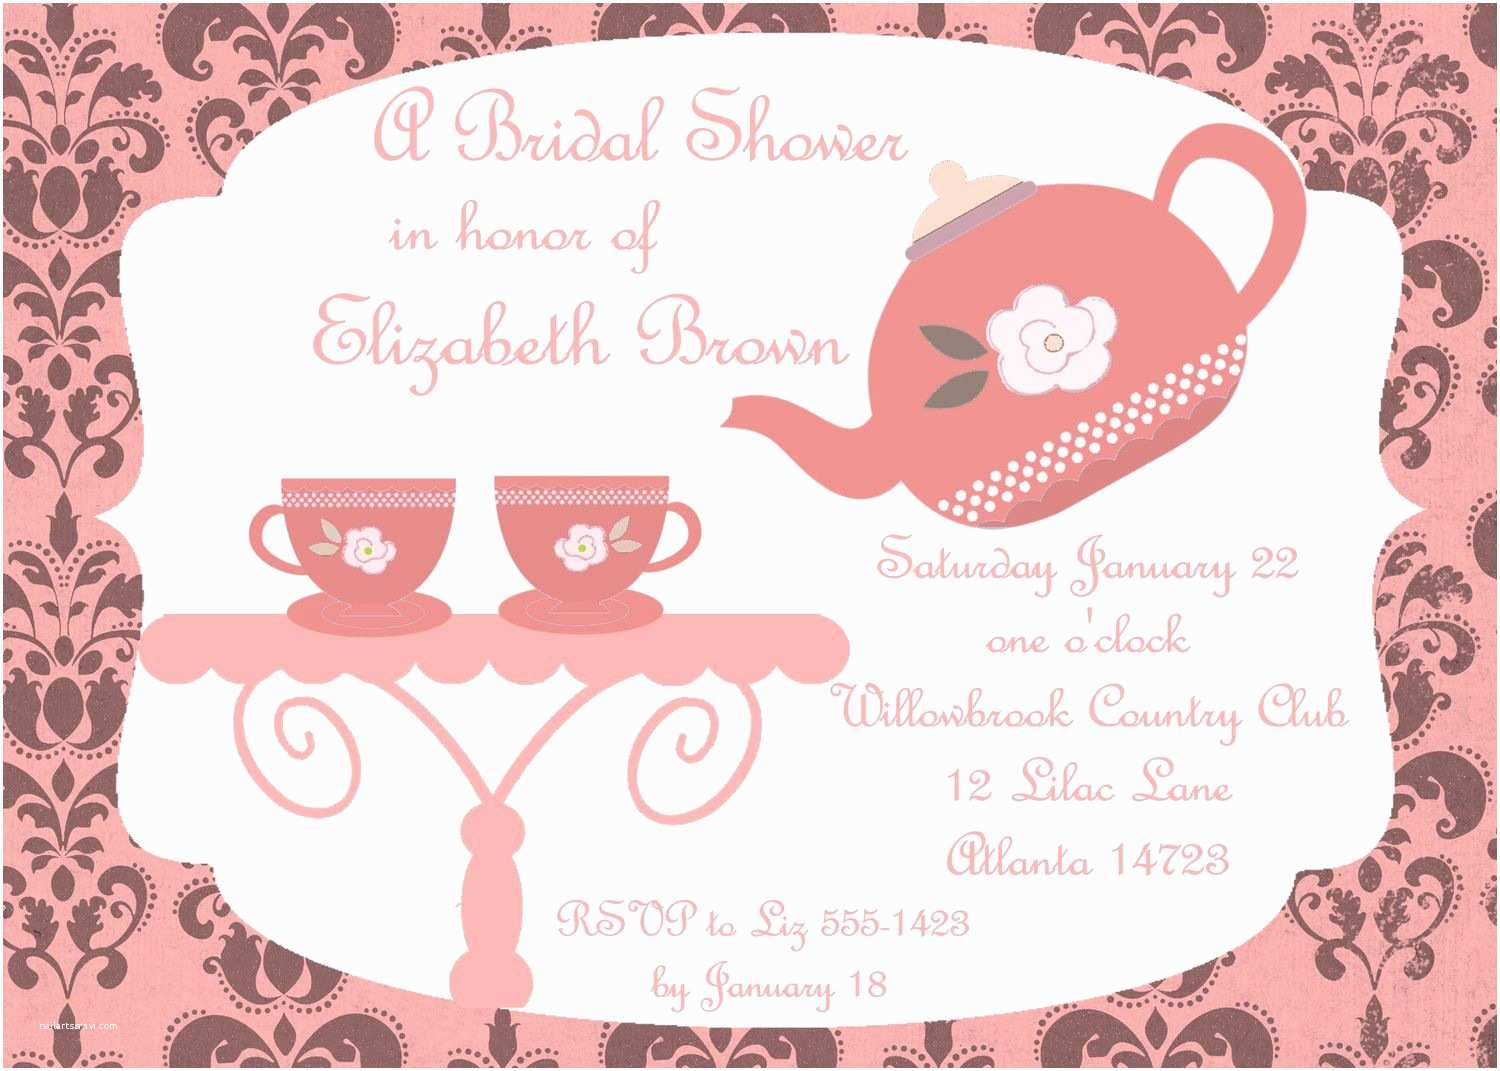 Tea Party Wedding Invitations Bridal Shower Tea Party Invitations Bridal Shower Tea